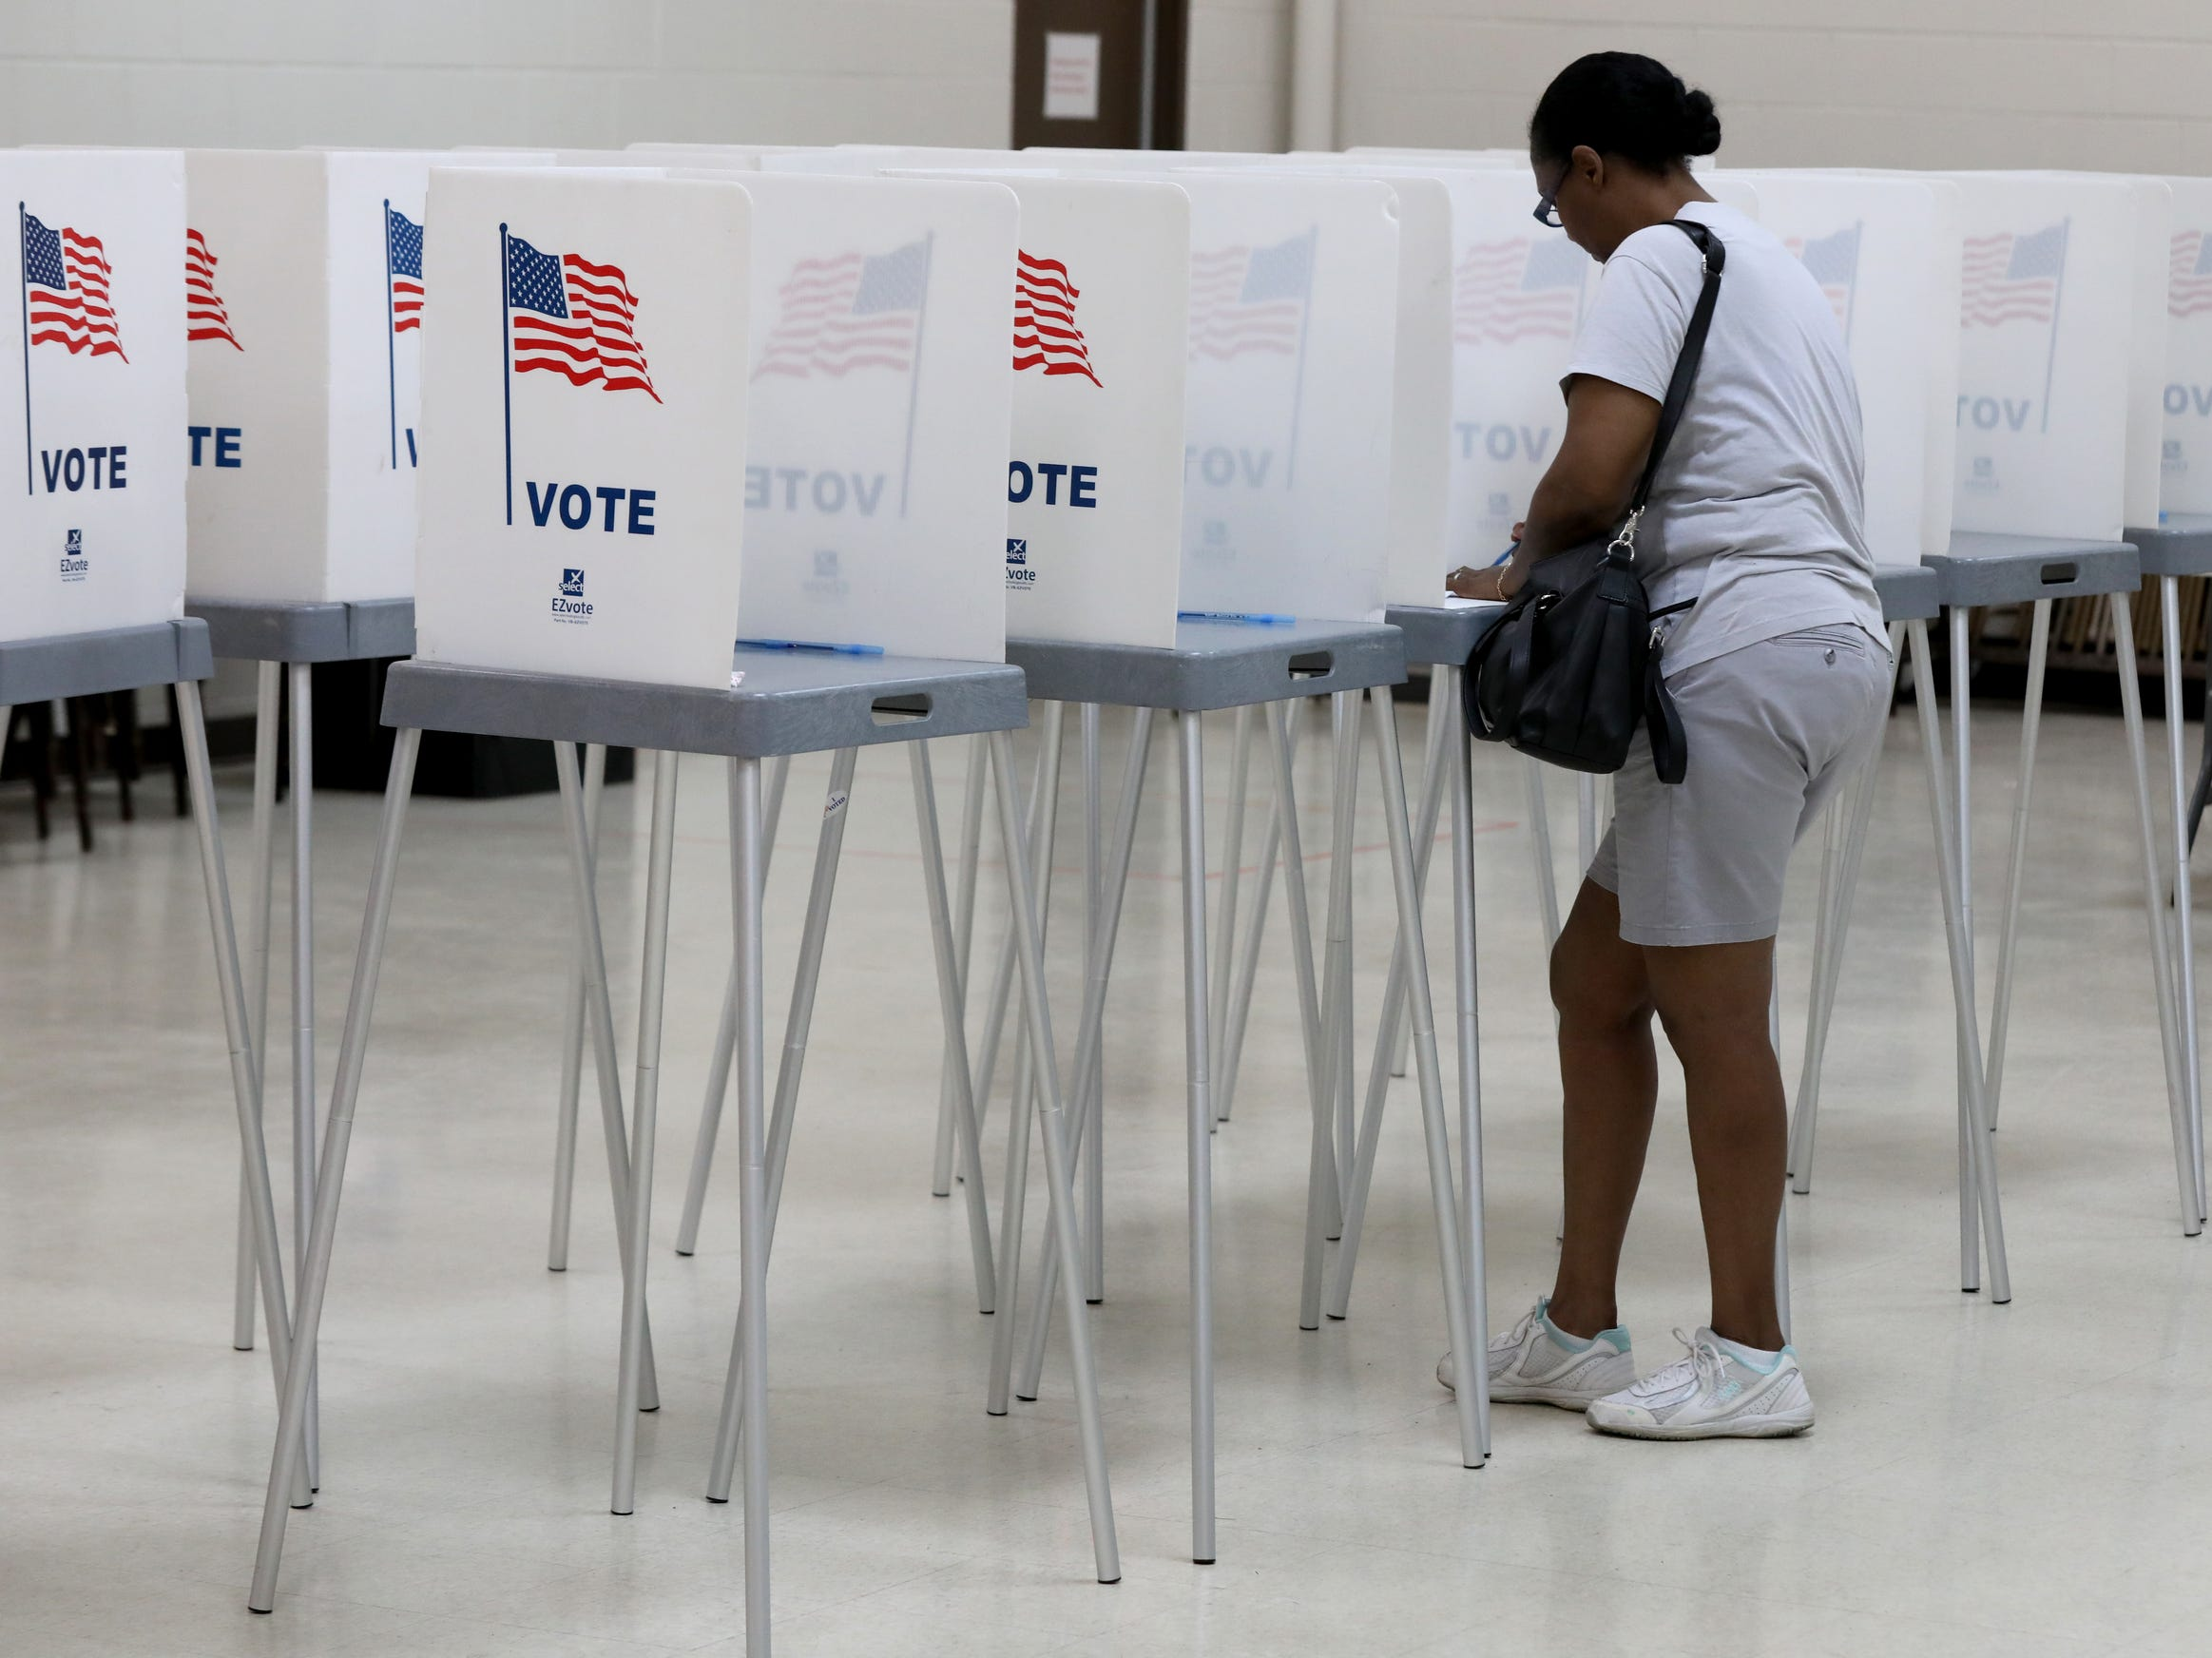 A woman casts her vote inside the gym of the Bowens Center in Pontiac on Tuesday, August 7, 2018.